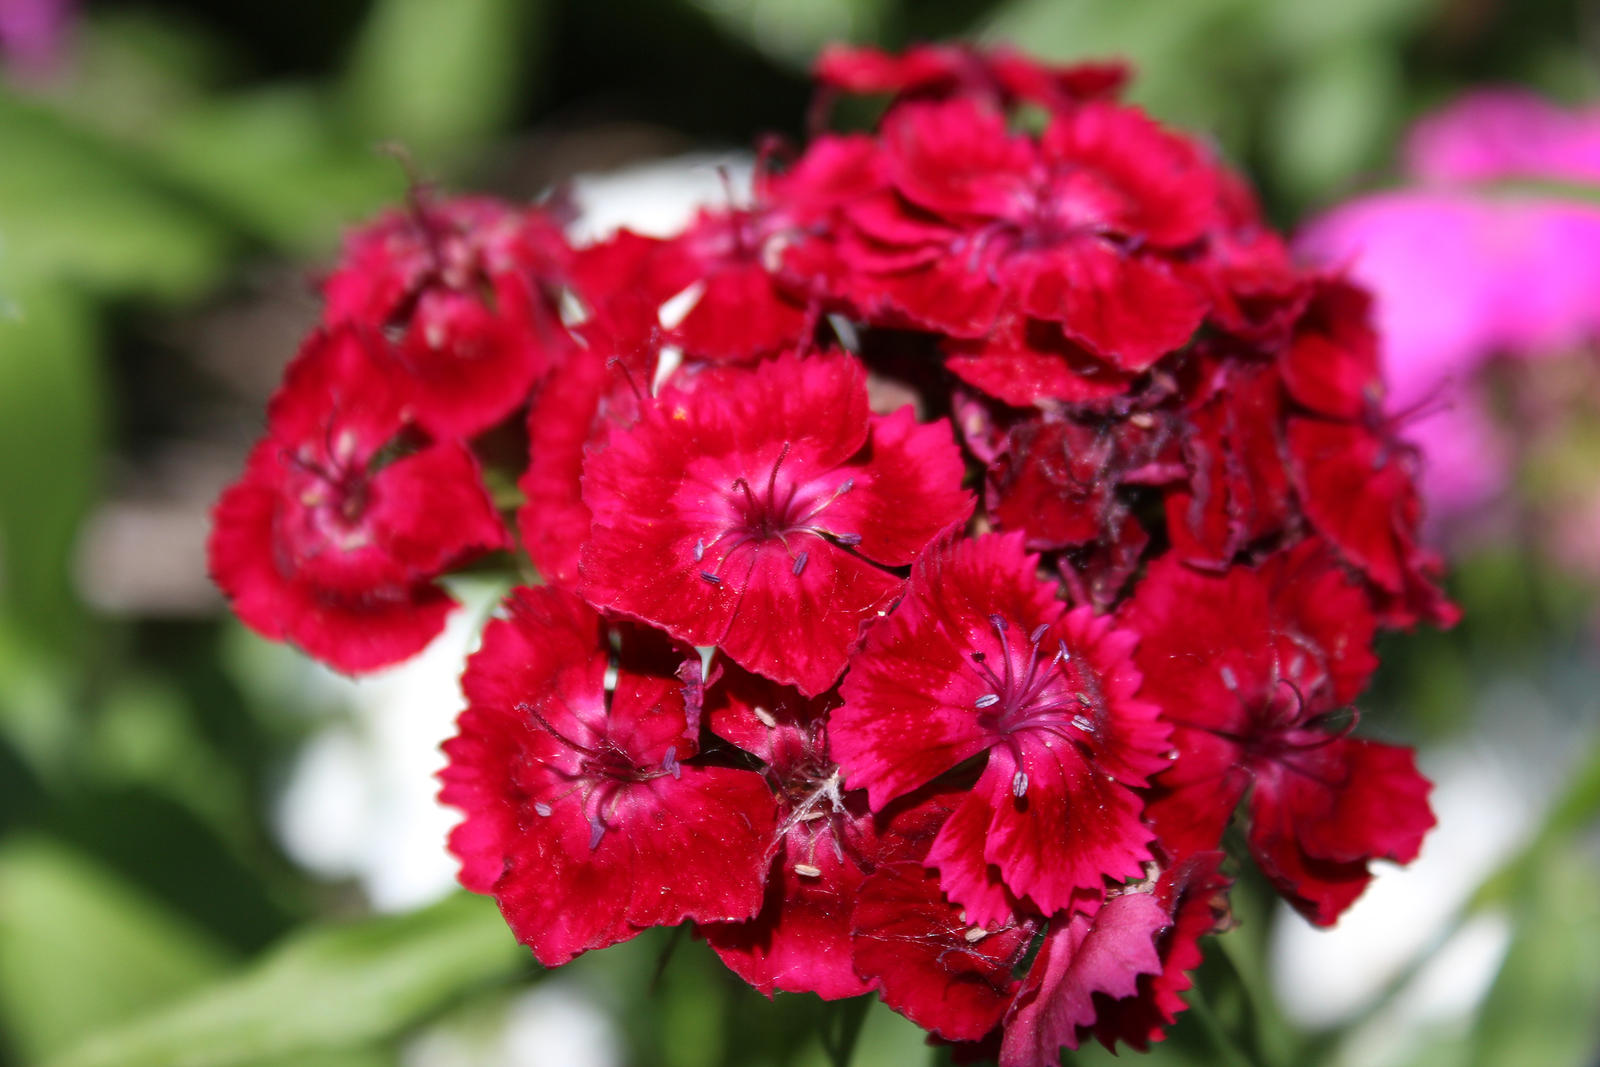 Red Dianthus Flowers by emilymhanson on DeviantArt